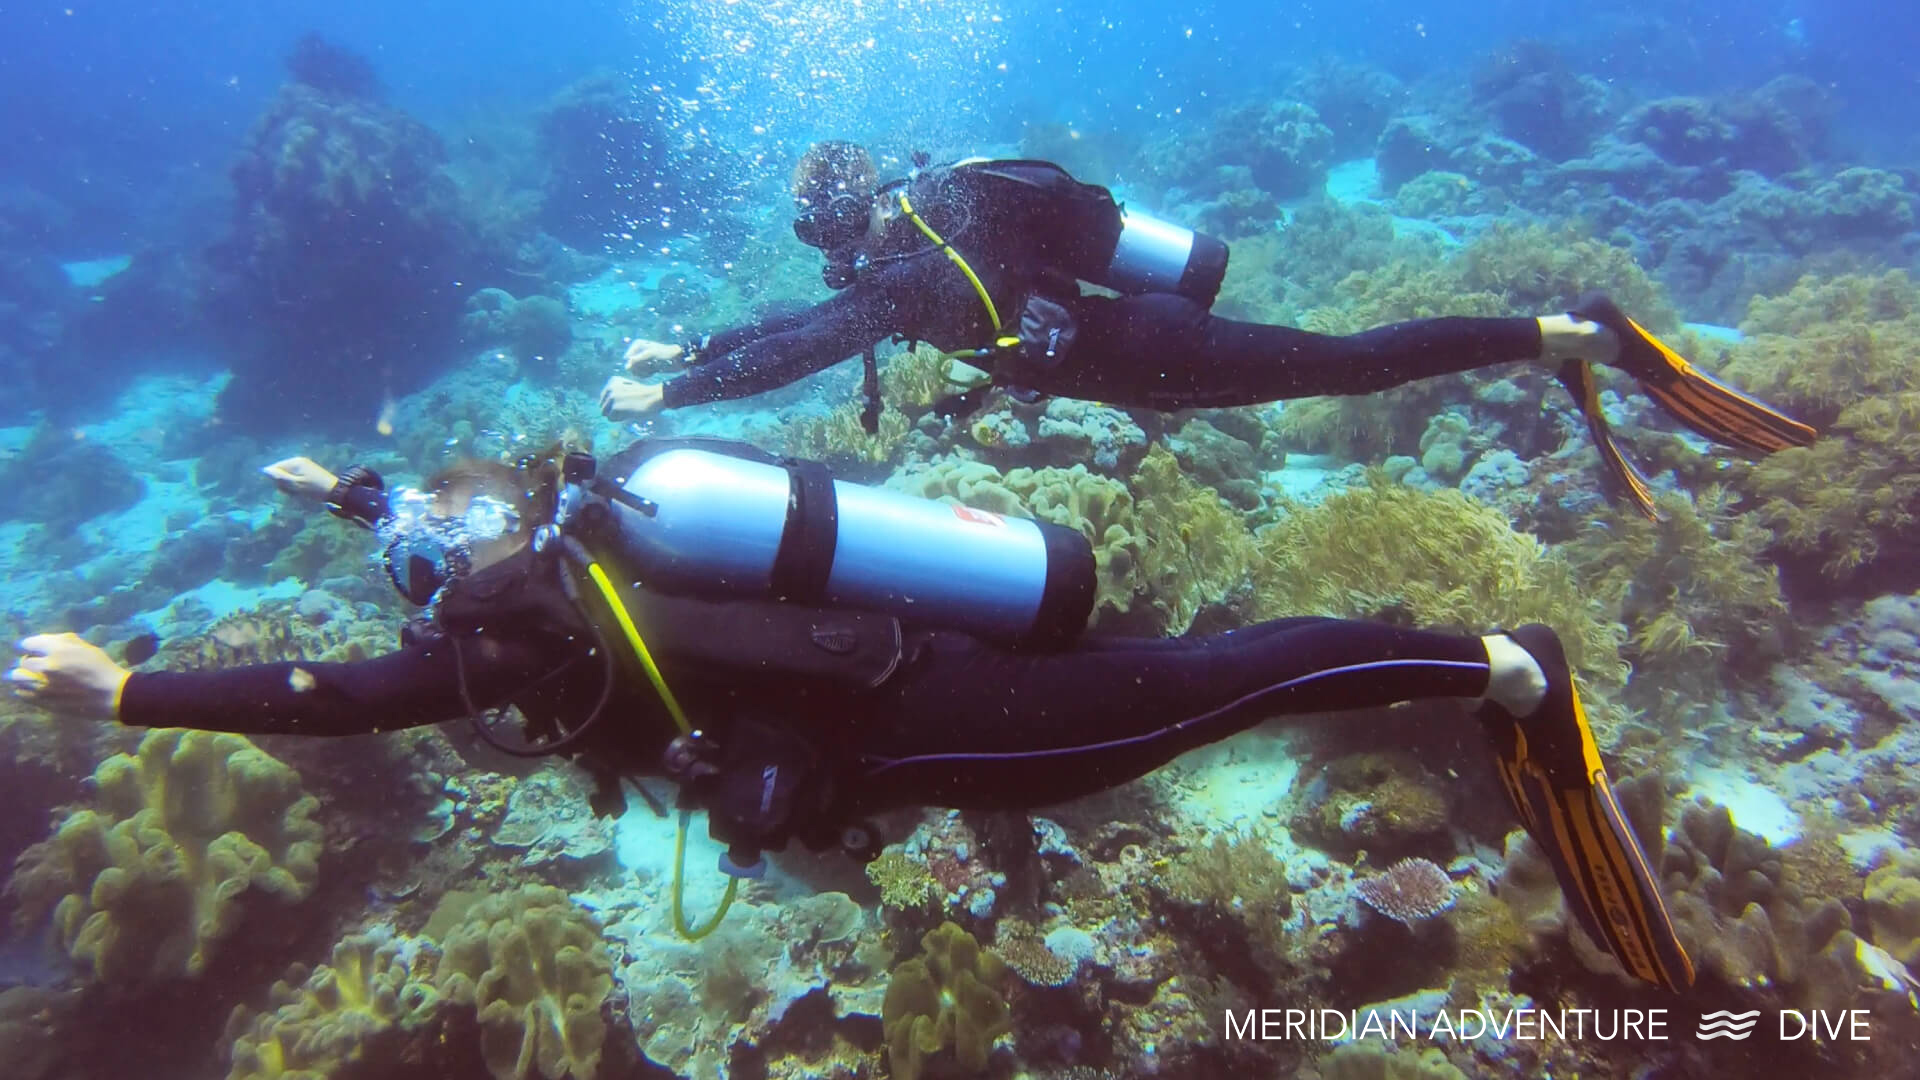 Meridian Adventure Dive.